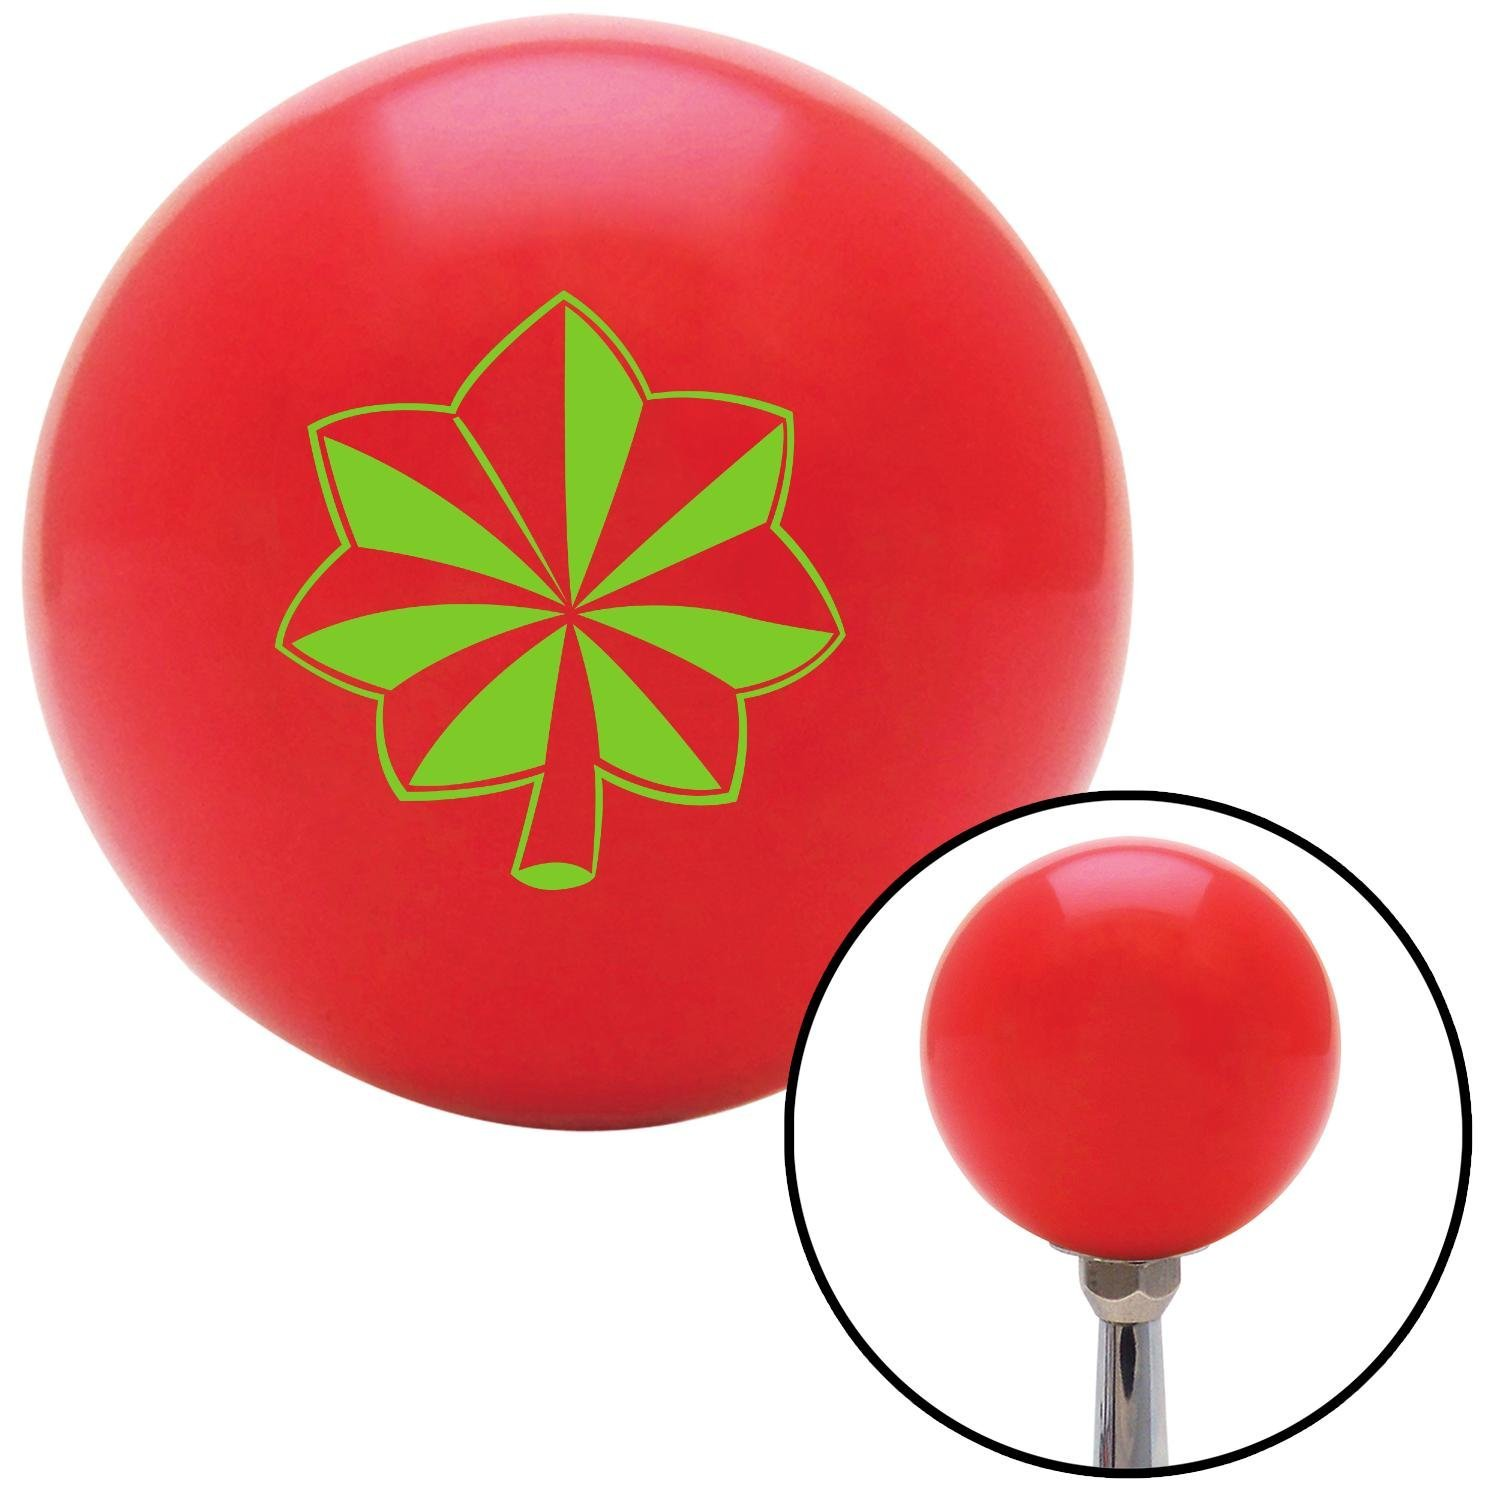 Green Commander American Shifter 97917 Red Shift Knob with M16 x 1.5 Insert